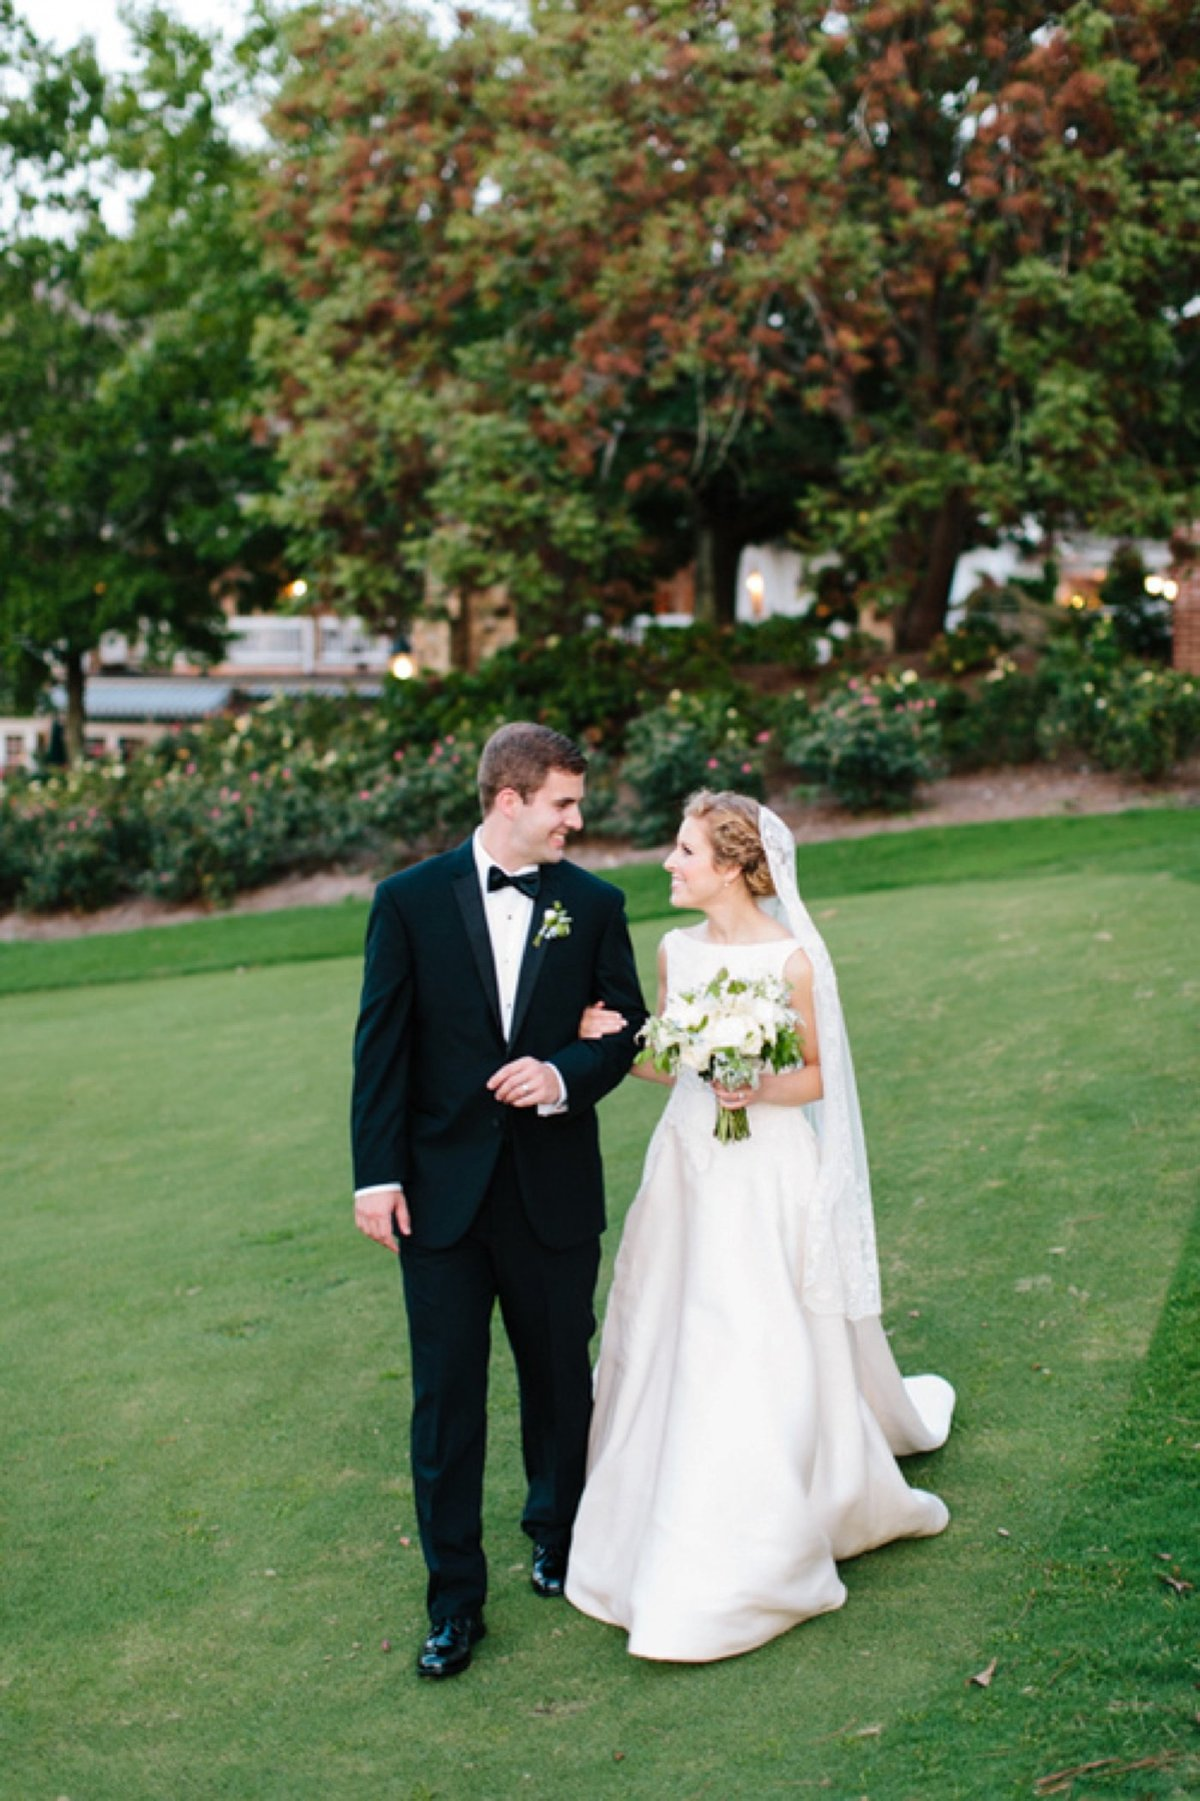 Georgia South Carolina Destination Wedding Photographer_0046